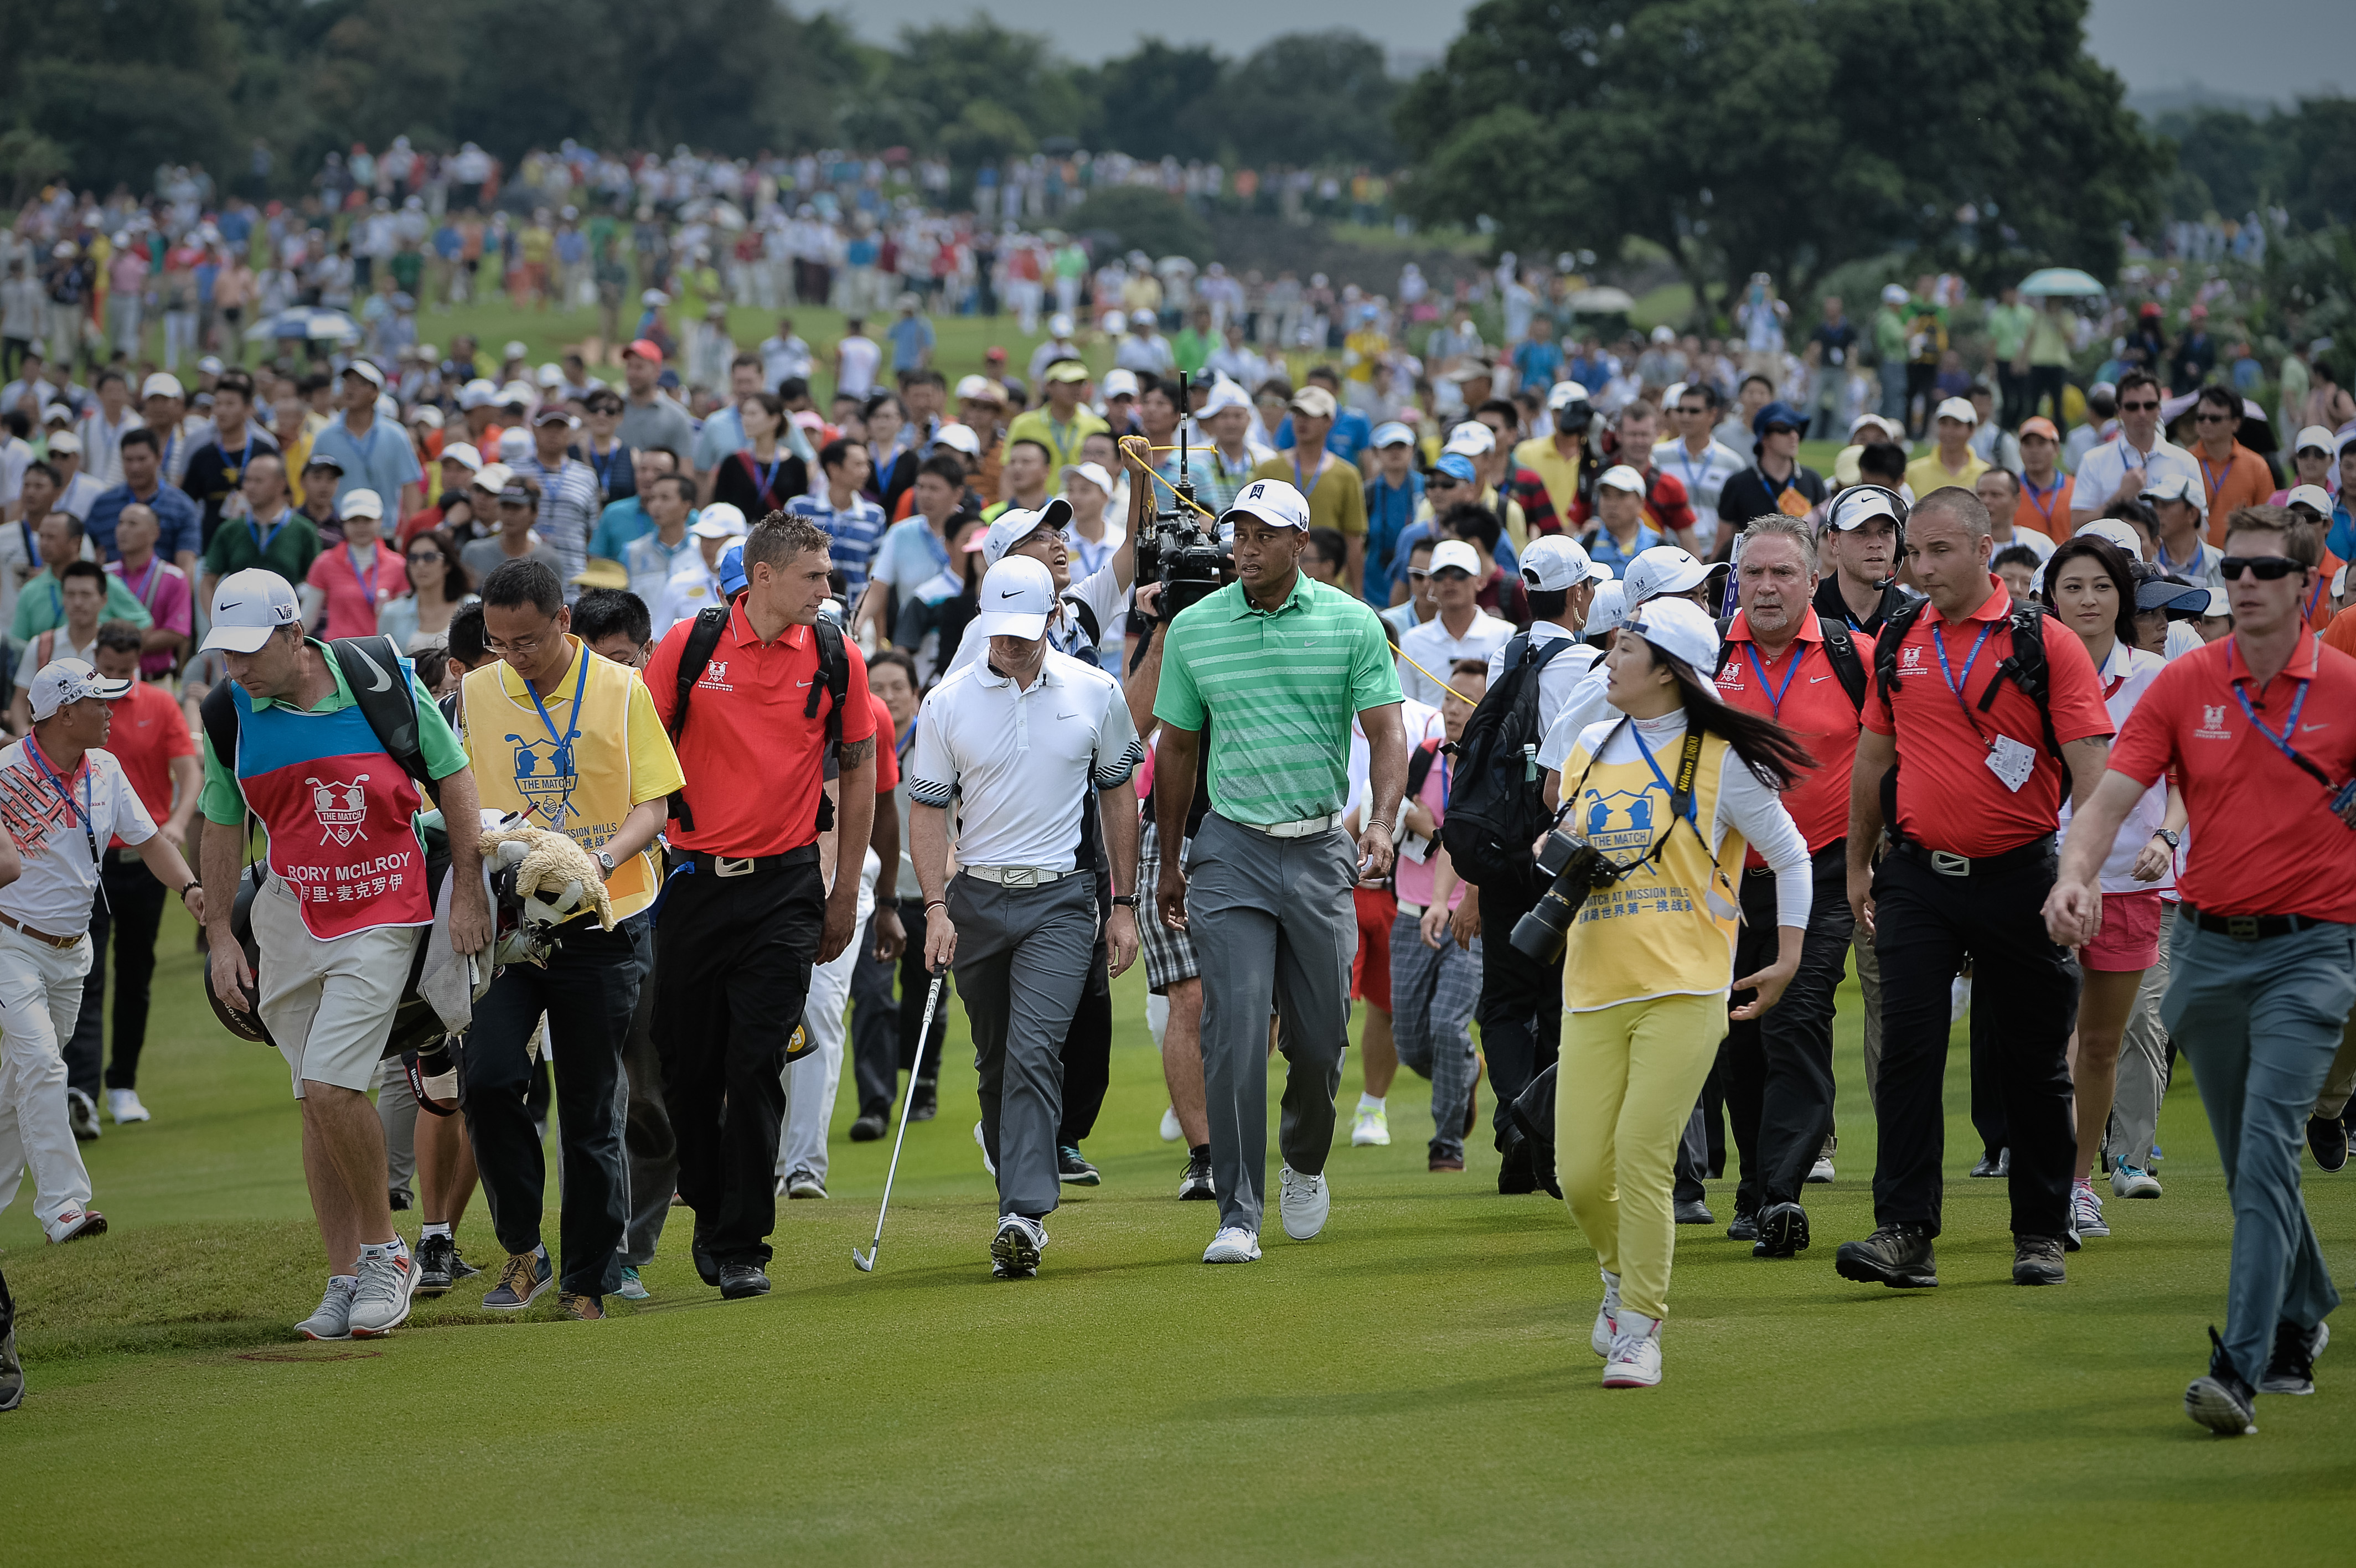 "When McIlroy defeated Woods in 2012, the Northern Irishman was at the top of his game. A year later, following a season-long struggle, McIlroy is looking for momentum to carry into 2014. ""I've seen a lot of promising signs over the past few weeks in practice and also in competitive play,"" McIlroy told the Associated Press. ""I still have four tournaments left until the end of the season and I would love to finish 2013 strongly and get a little bit of momentum going into next season. But I think as I showed out there, I'm hitting the ball well."""